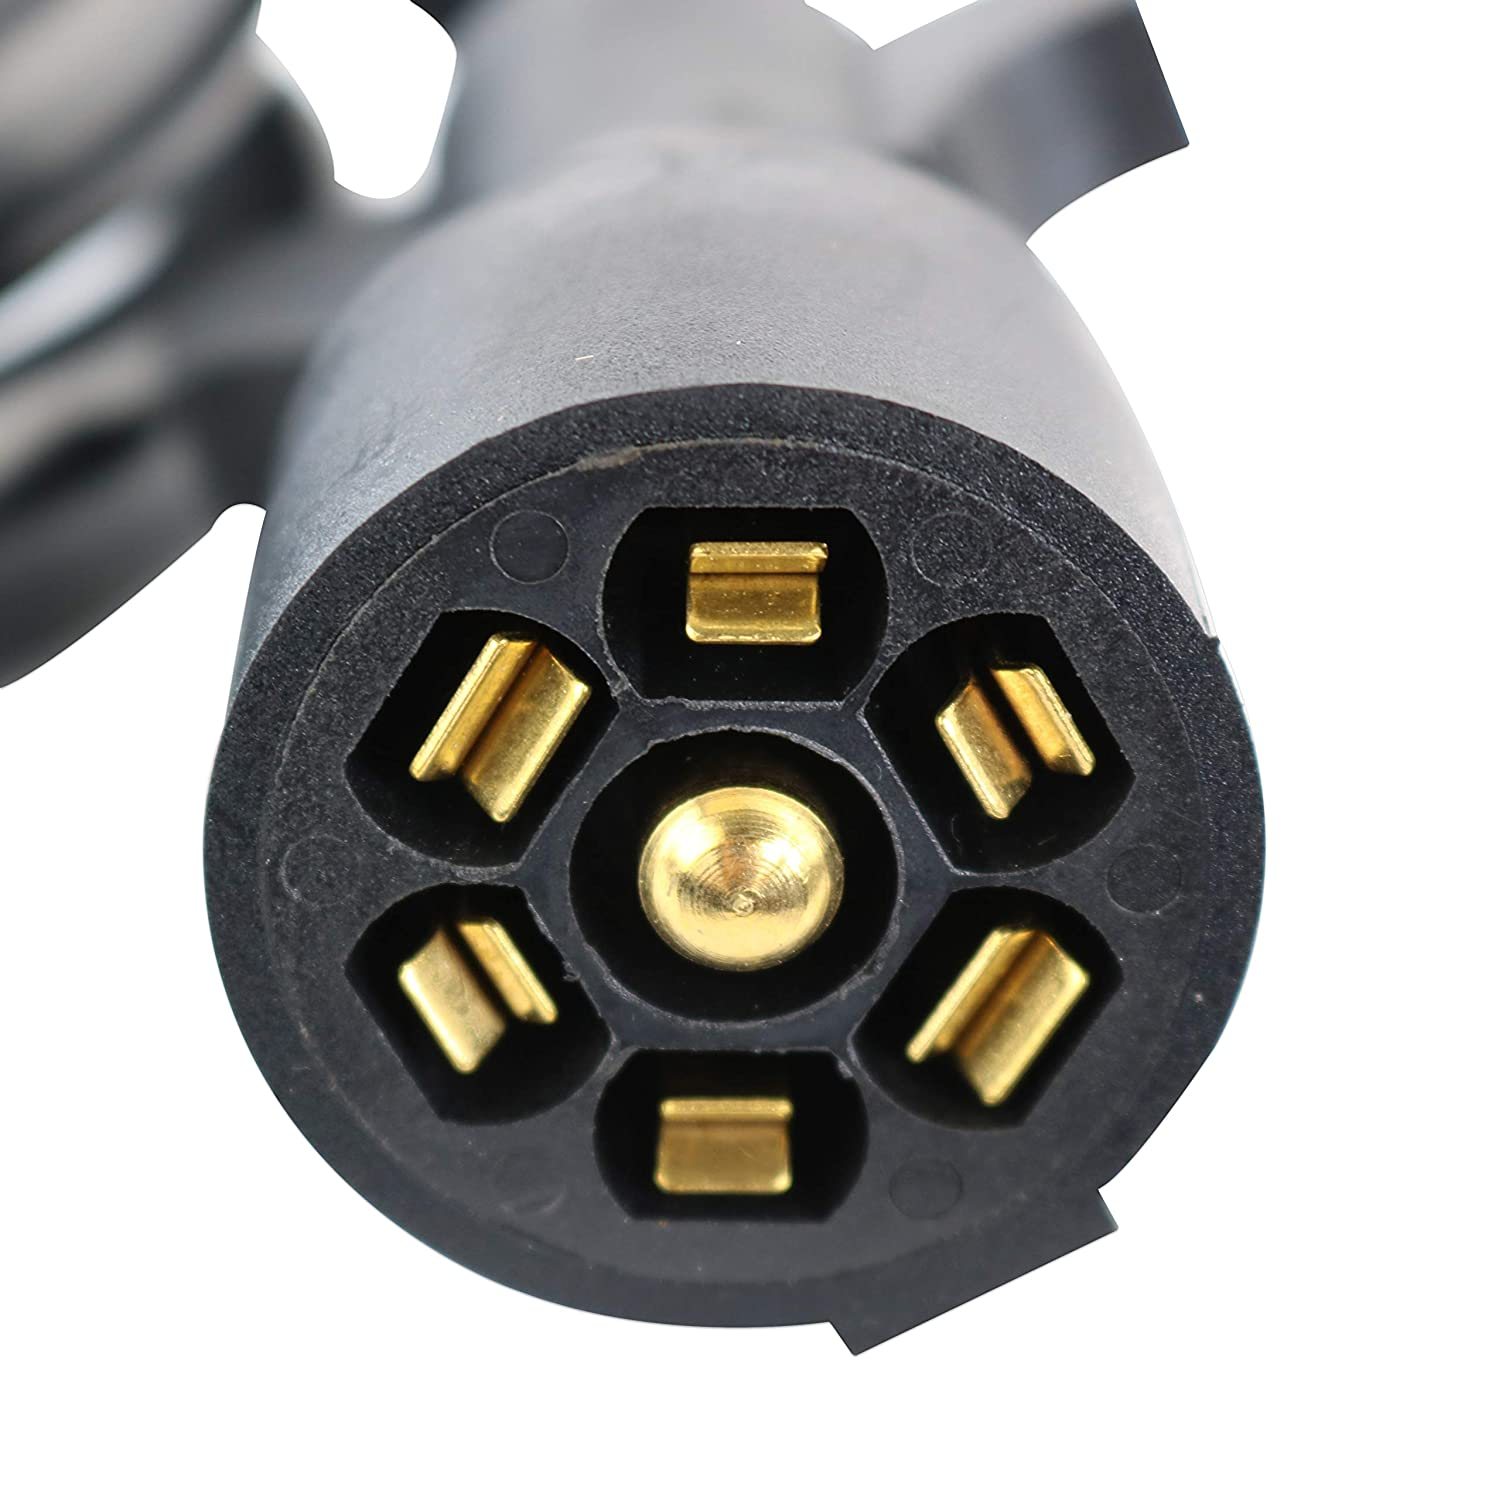 Heavy Duty /& Weatherproof 5th Wheel to Truck or Van 8-Feet 7 Pin Connector Plug for RV Trailer Leisure Cords 7-Way Trailer Extension Cord Wire 8 Ft Caravan